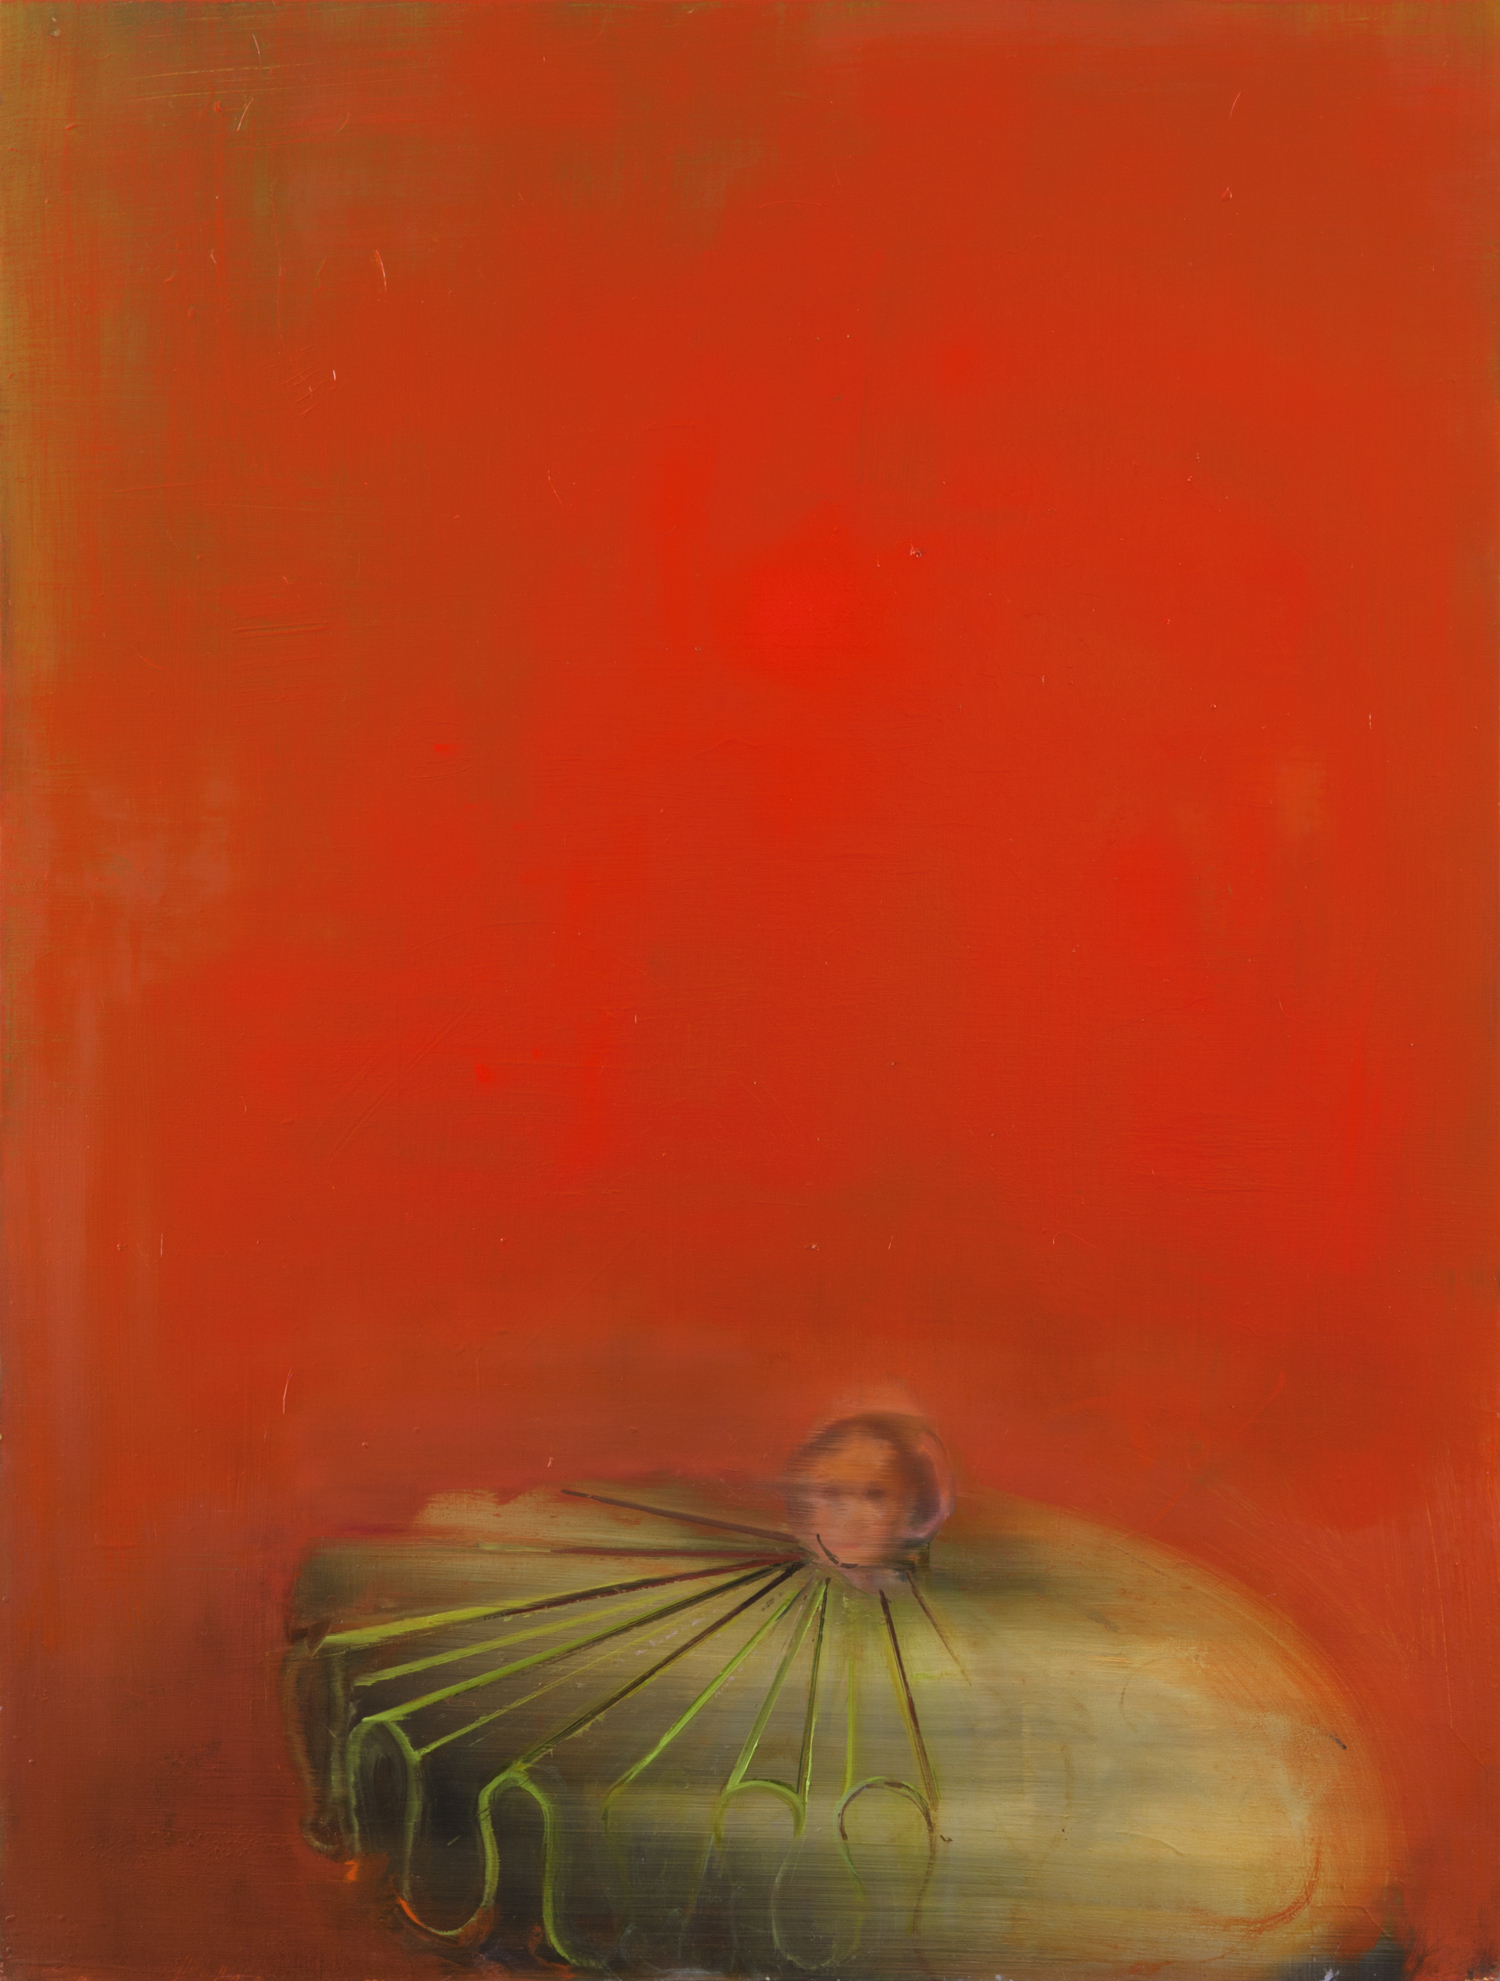 Green Collar on Red, 2014